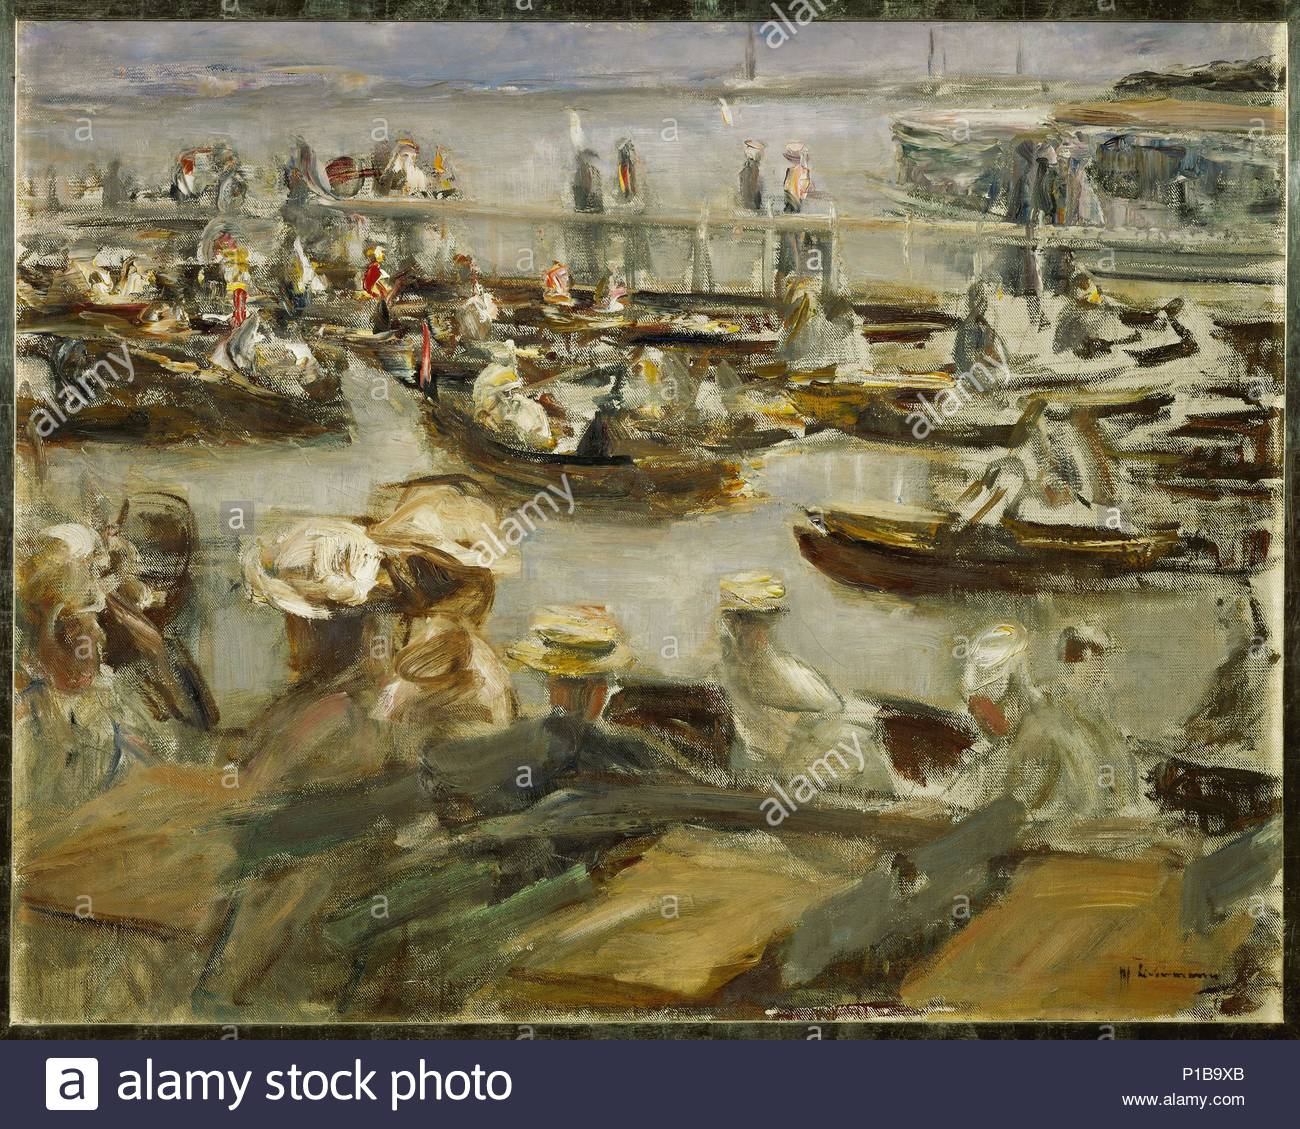 Summer evening on the Alster-river, Hamburg, Germany, 1909 Canvas, 70,5 x 89 cm Inv. 154 / 10. Author: Max Liebermann (1847-1935). Location: Leopold Hoesch Museum, Dueren, Germany. - Stock Image